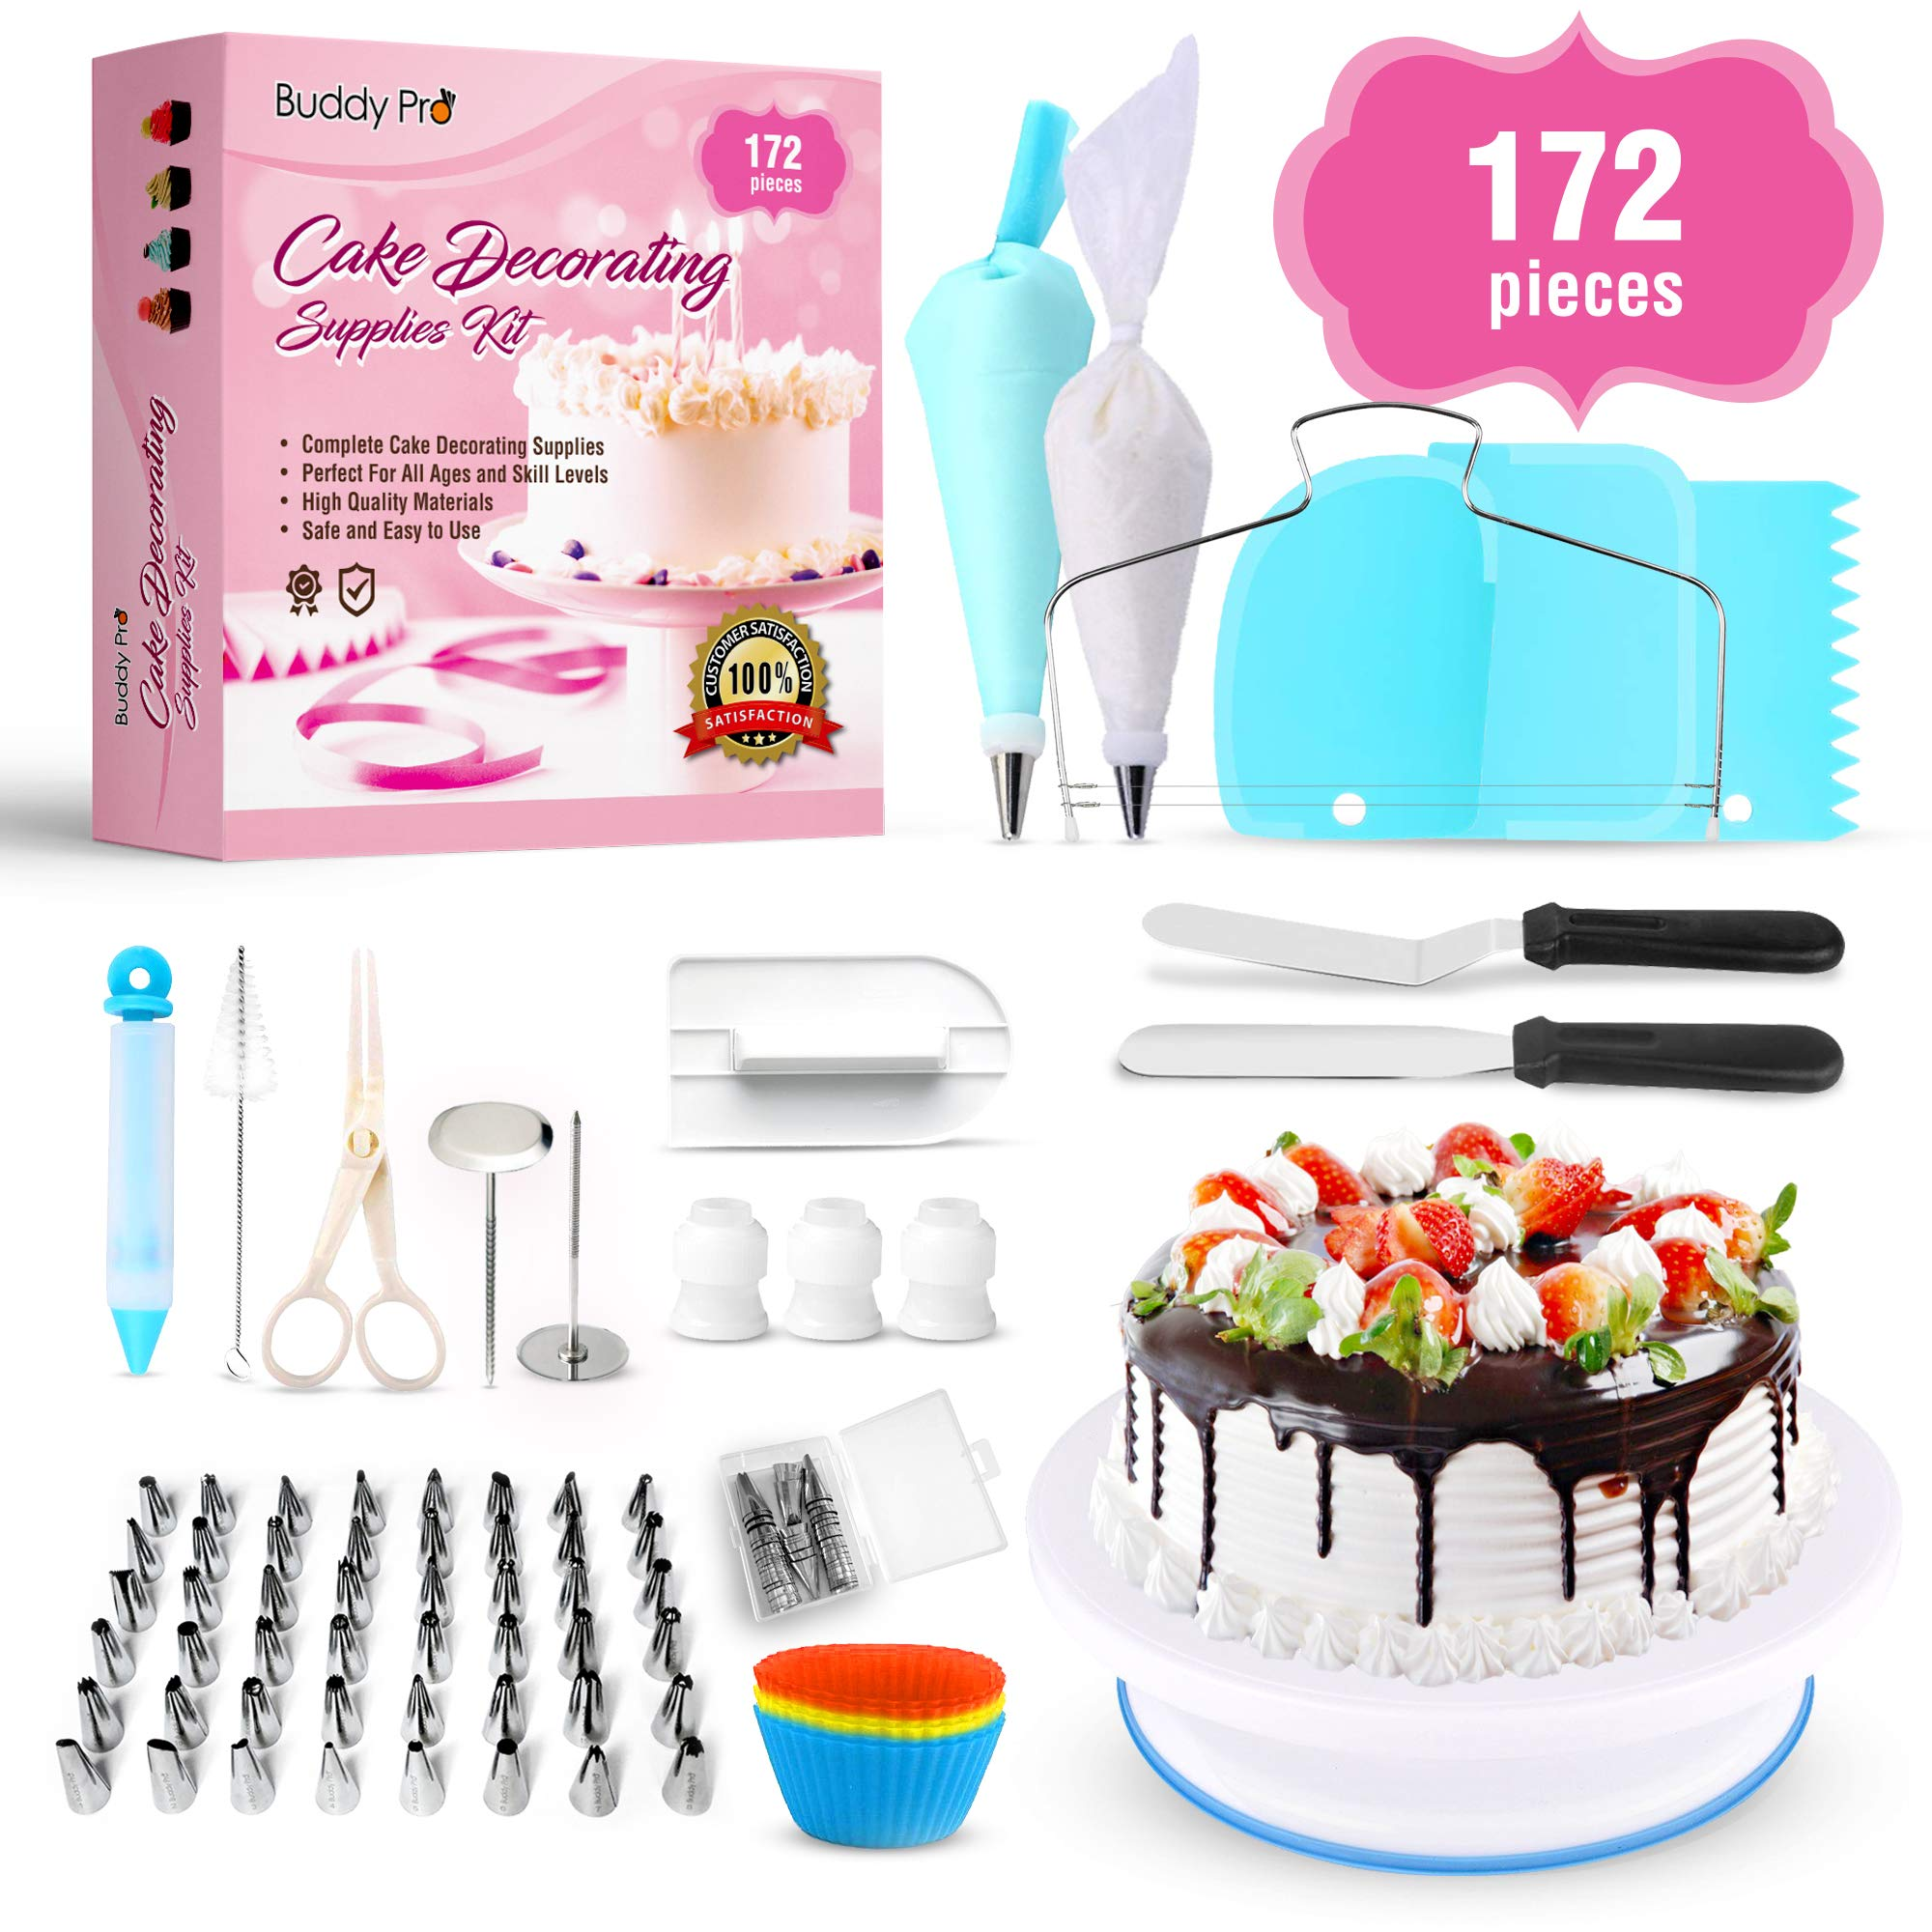 Cake Decorating Supplies 172 Pcs/Baking Supplies Kit/Beginner Baking Tools | Piping Bags and Tips, Icing Spatula, Turntable Cake Stand, Frosting Smoother, Cupcake Decorating Kit by Buddy Pro by Buddy Pro